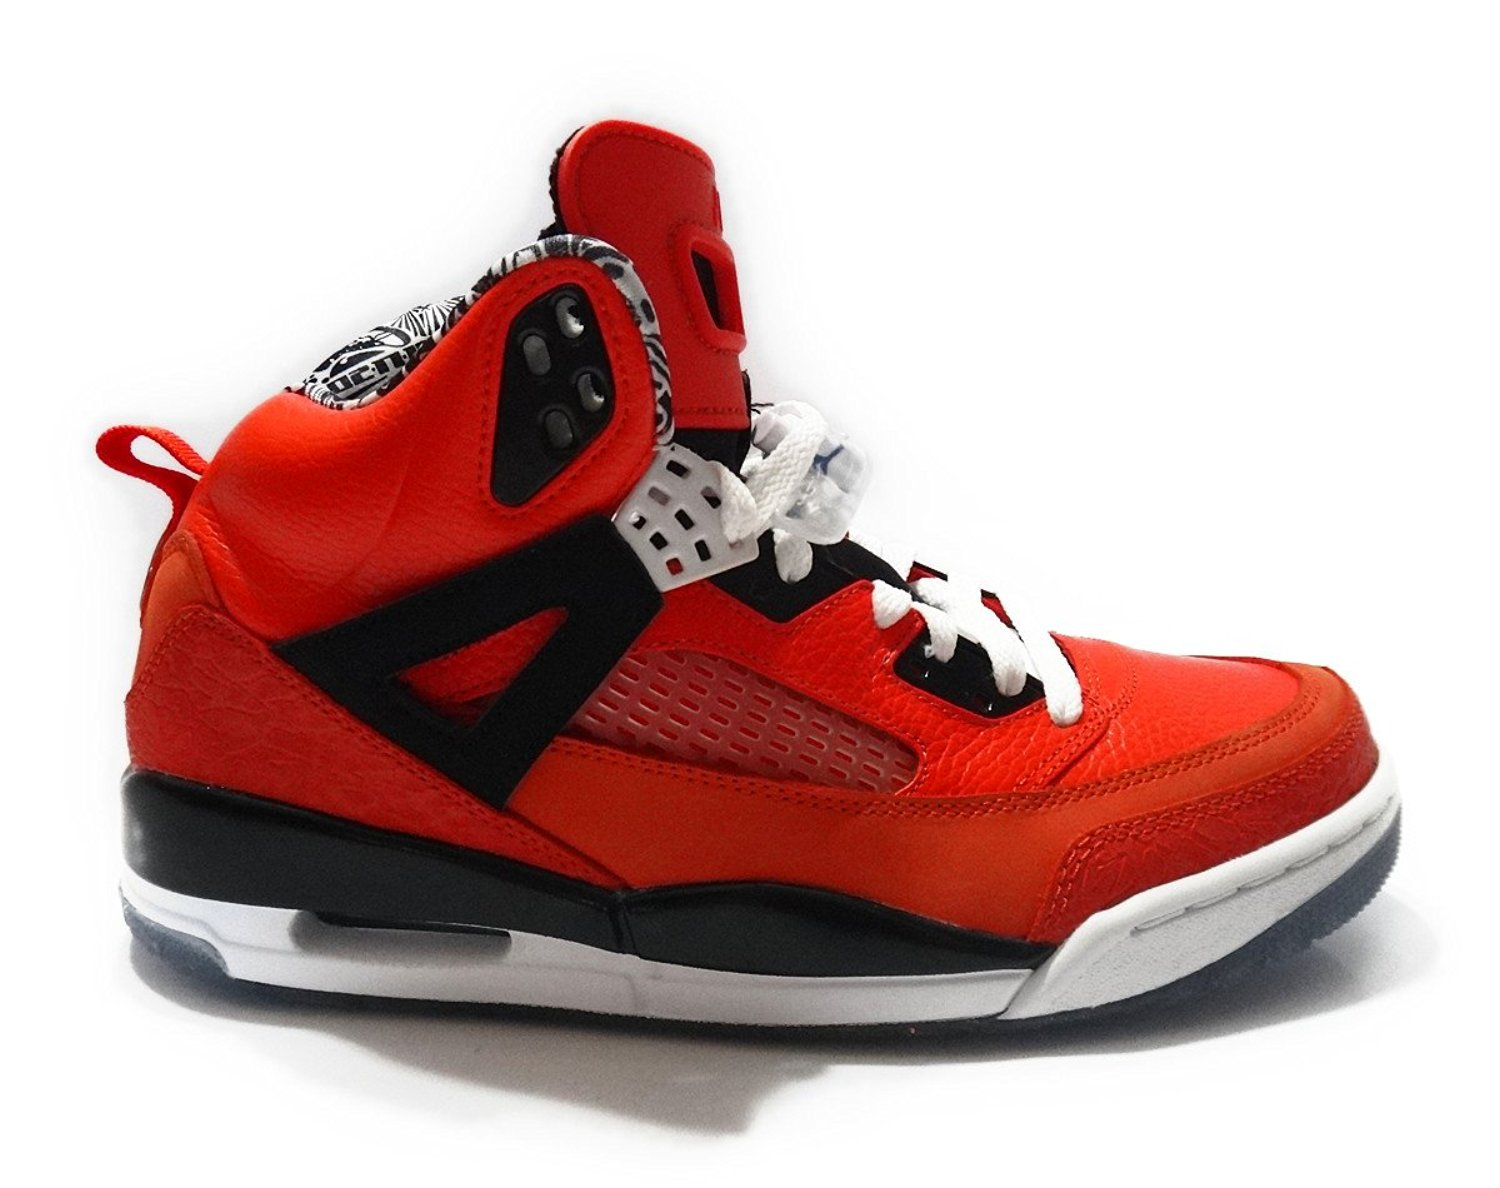 f28112e06b5 Buy Nike Air Jordan Spizike Bordeaux 315371 070 Size 11 Mens ...